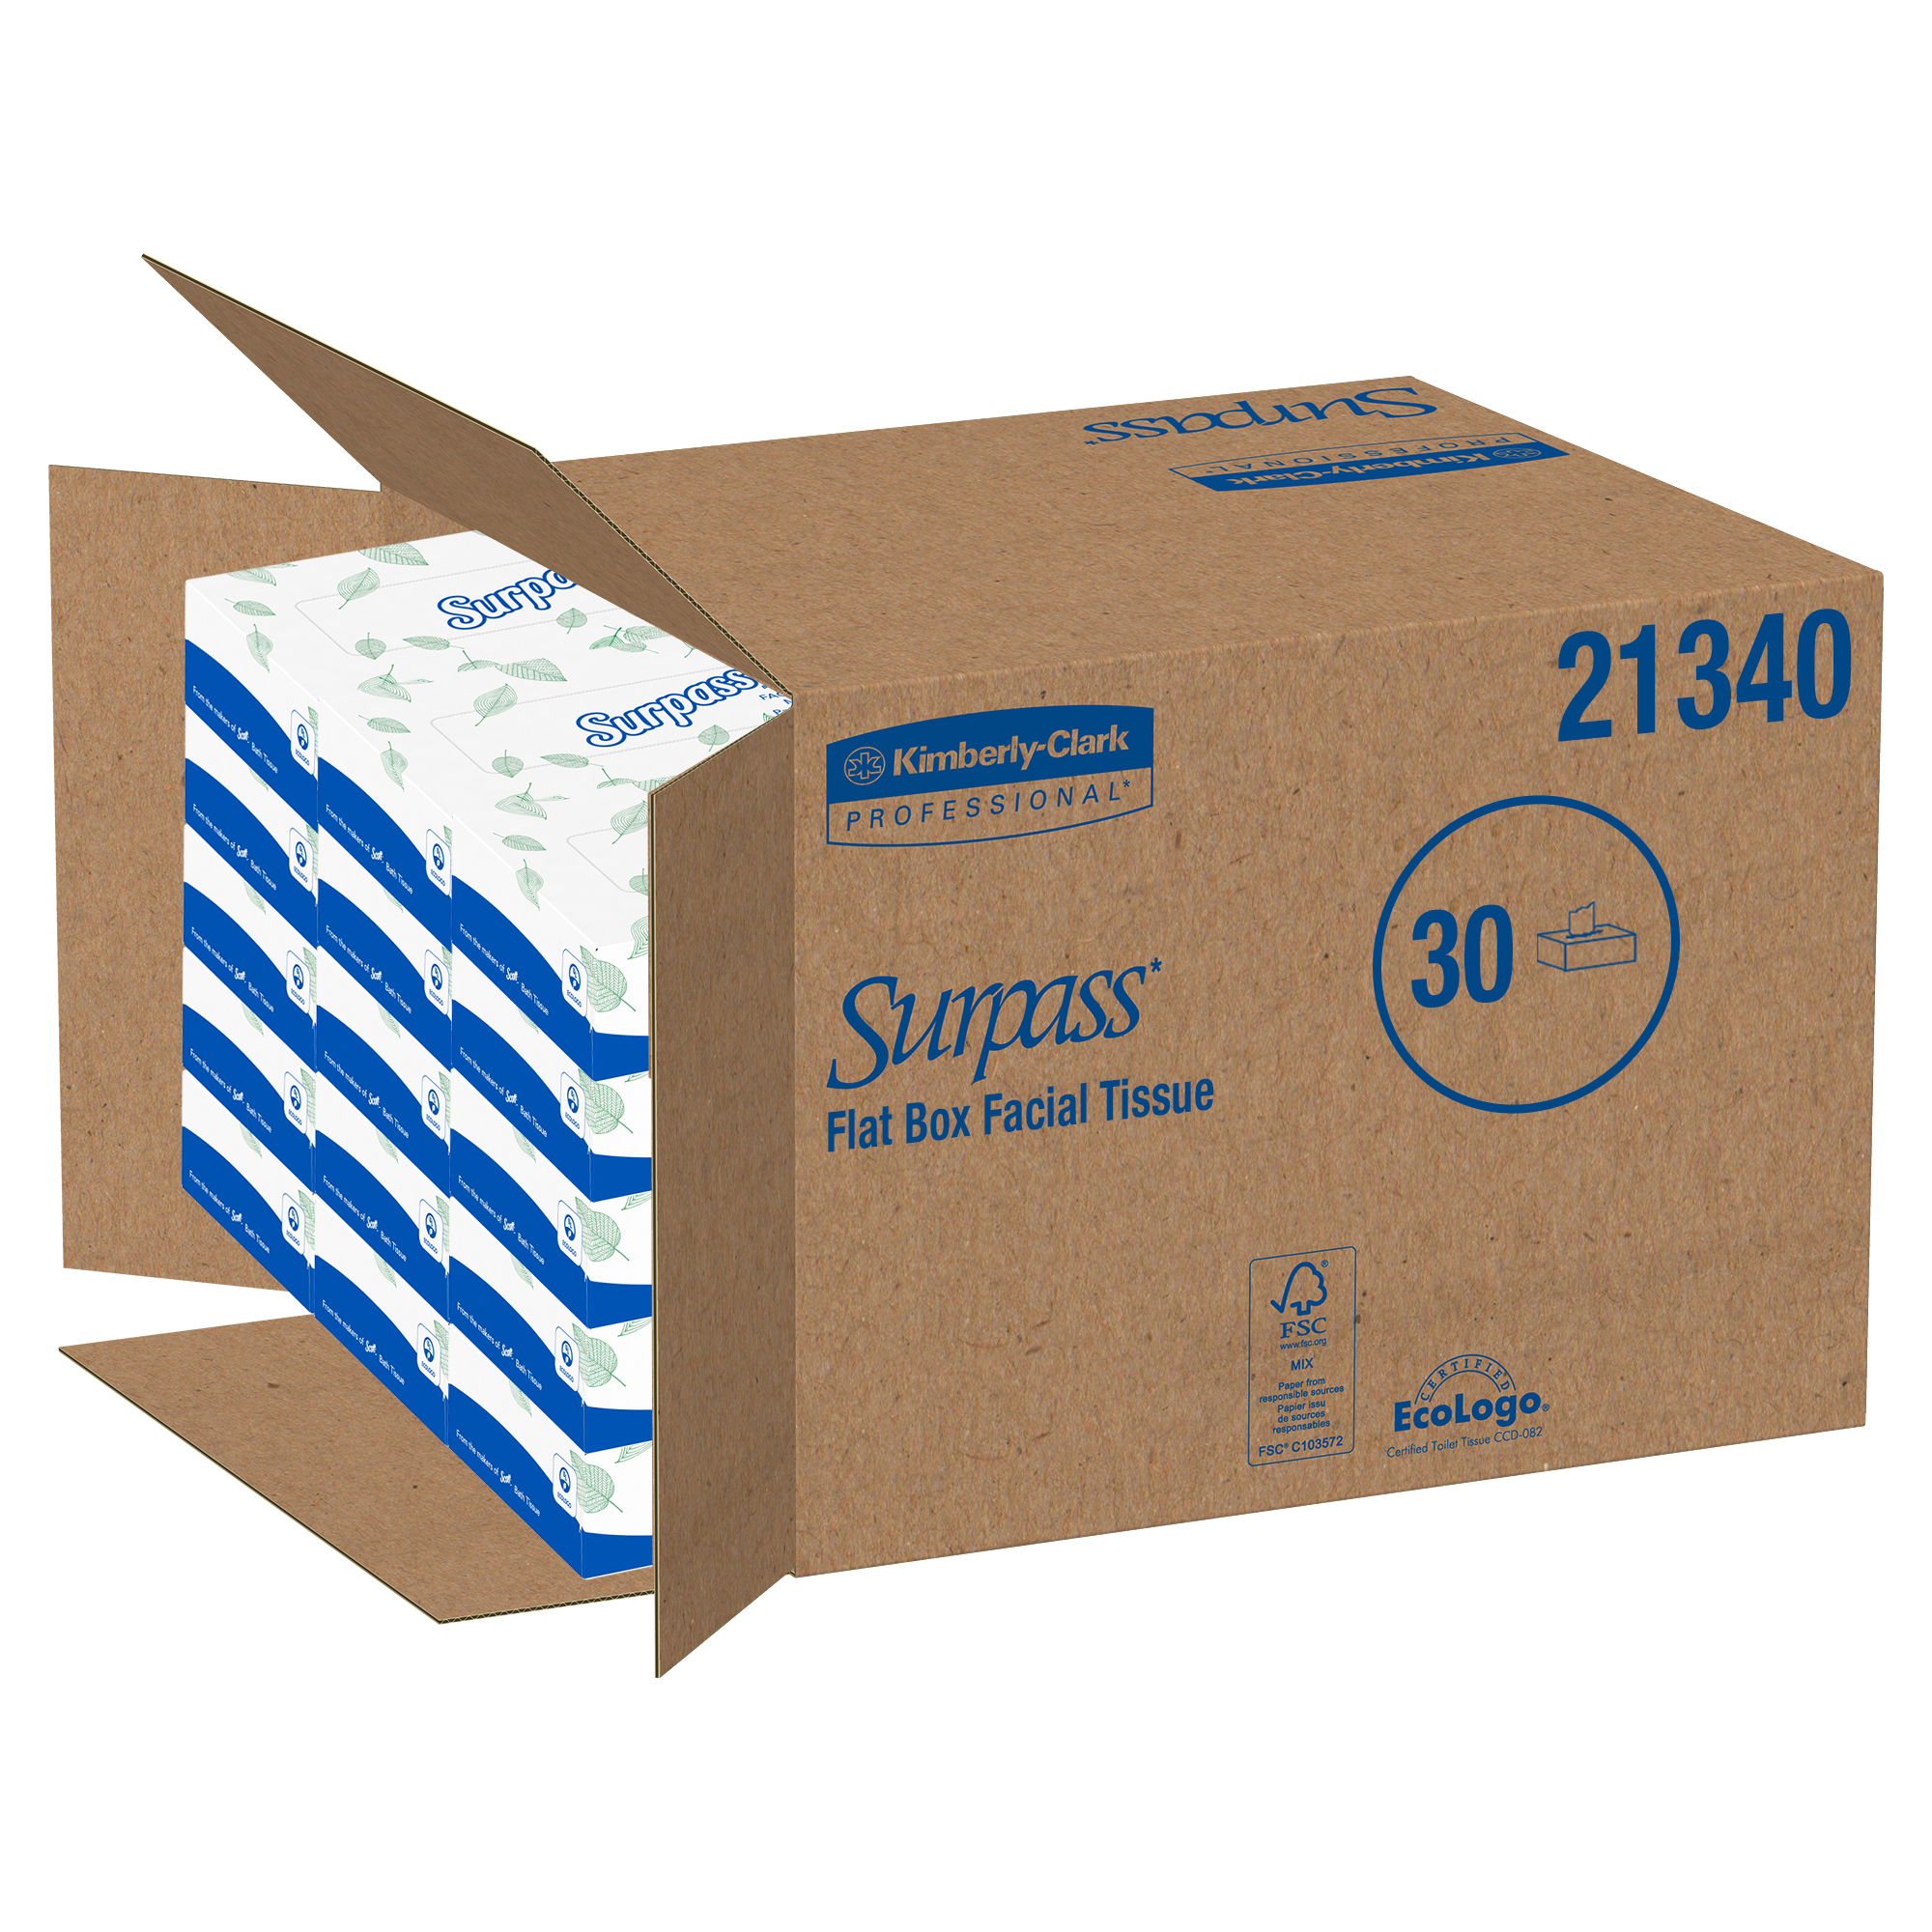 Surpass Facial Tissue Flat Box (21340), 2-Ply, White, Unscented, 100 Tissues / Box, 30 Boxes / Big